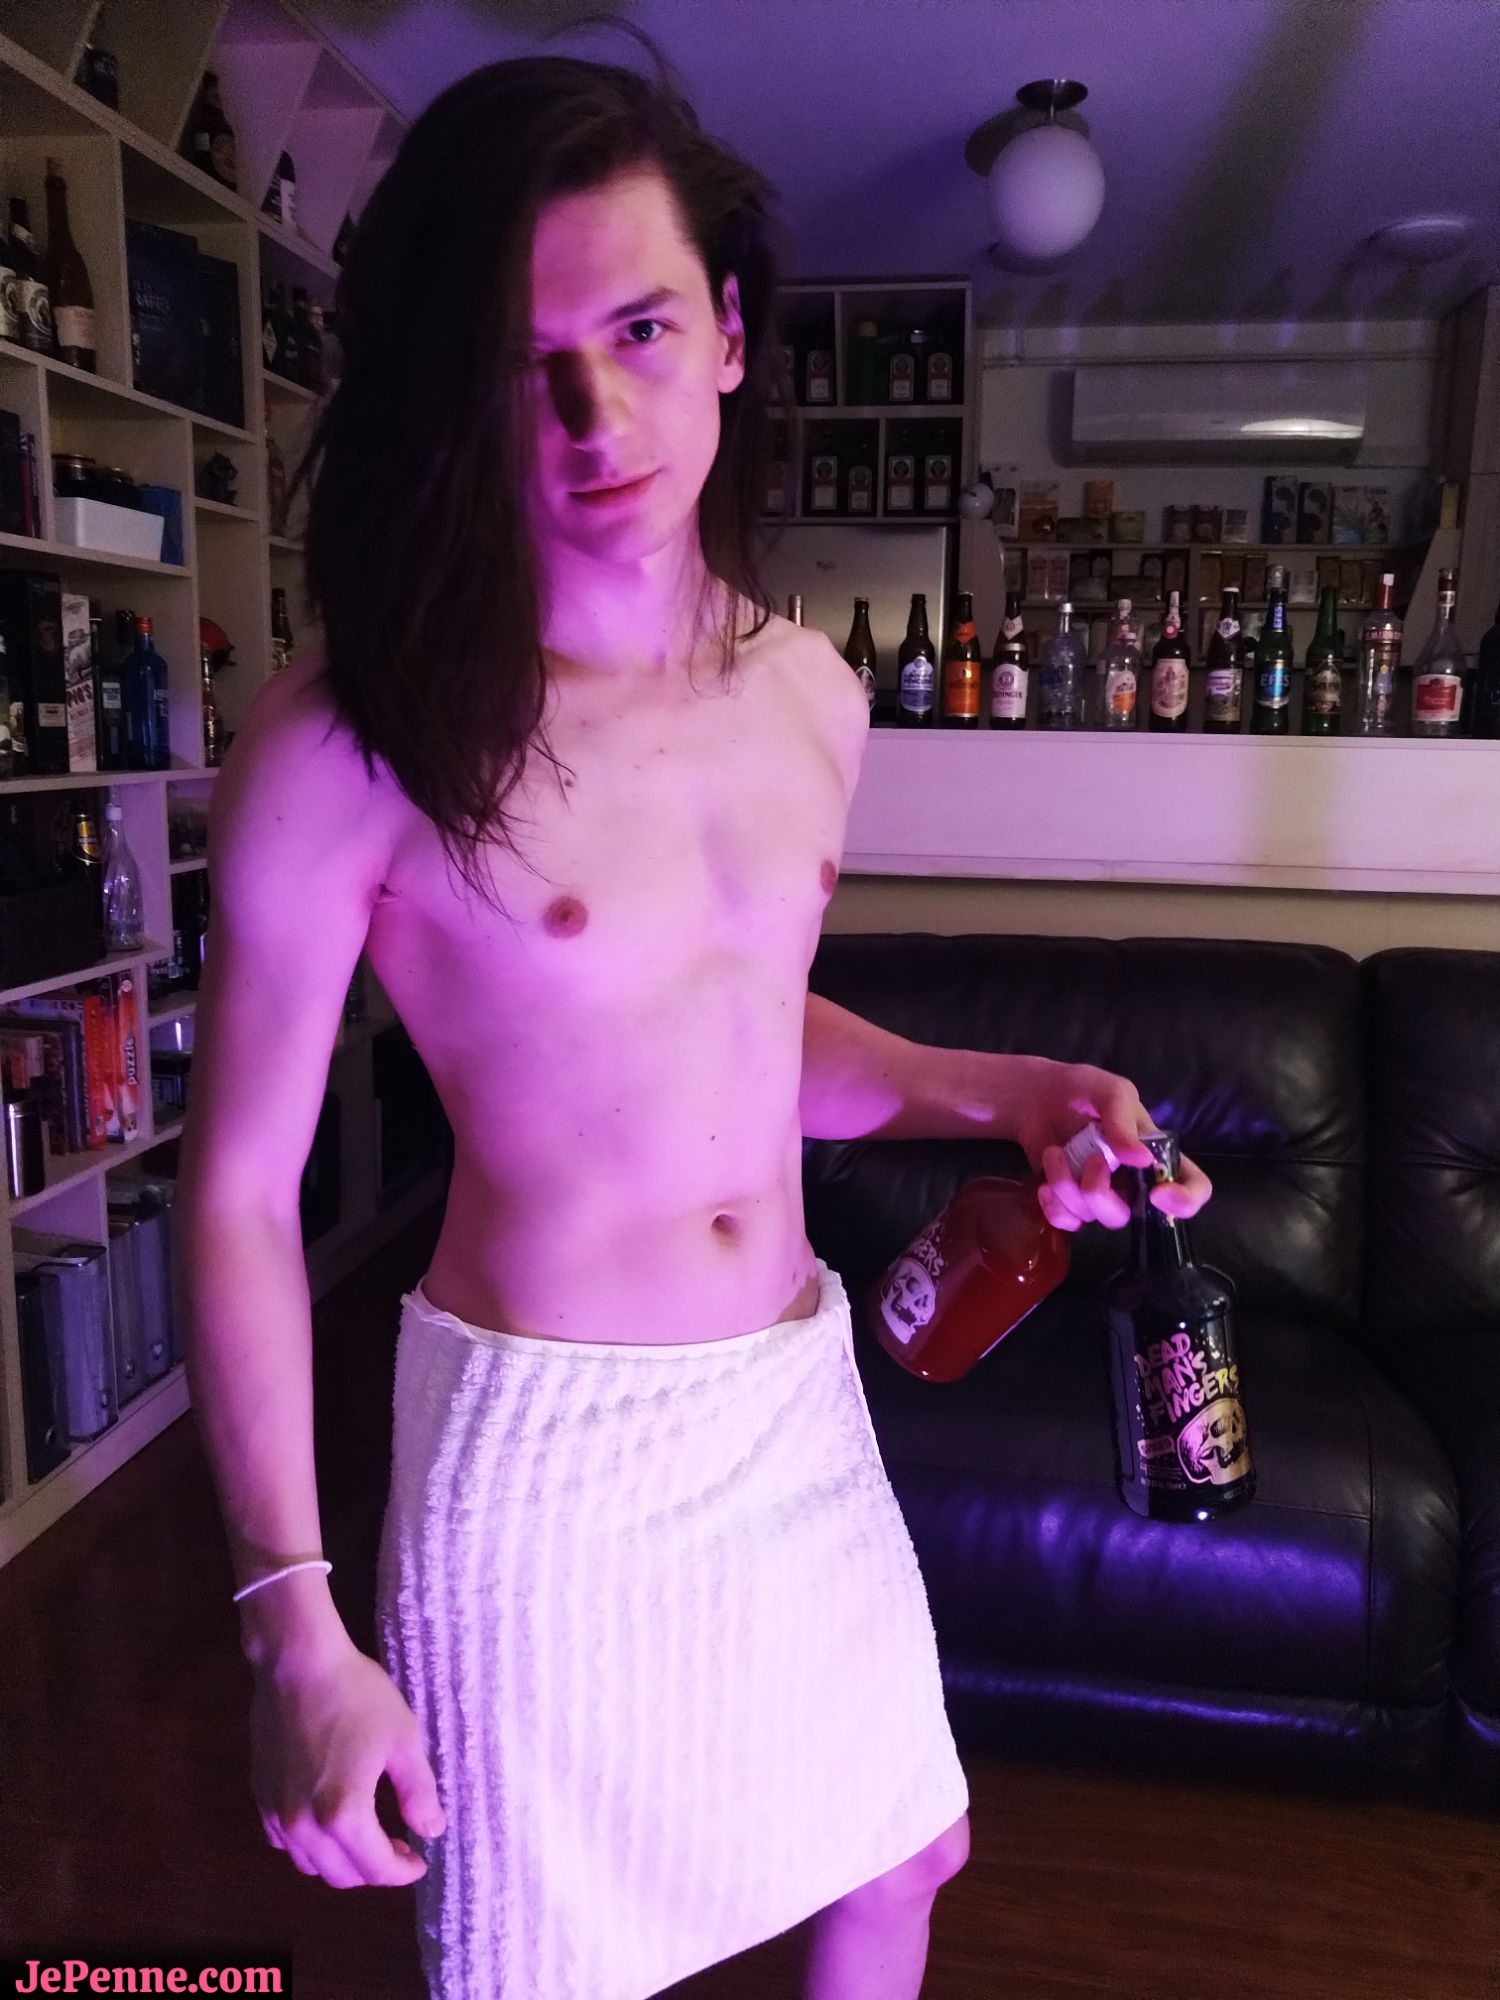 JePenne (slim, fit, long dark hair) with only a towel to hide his manly parts is holding 2 drinks.